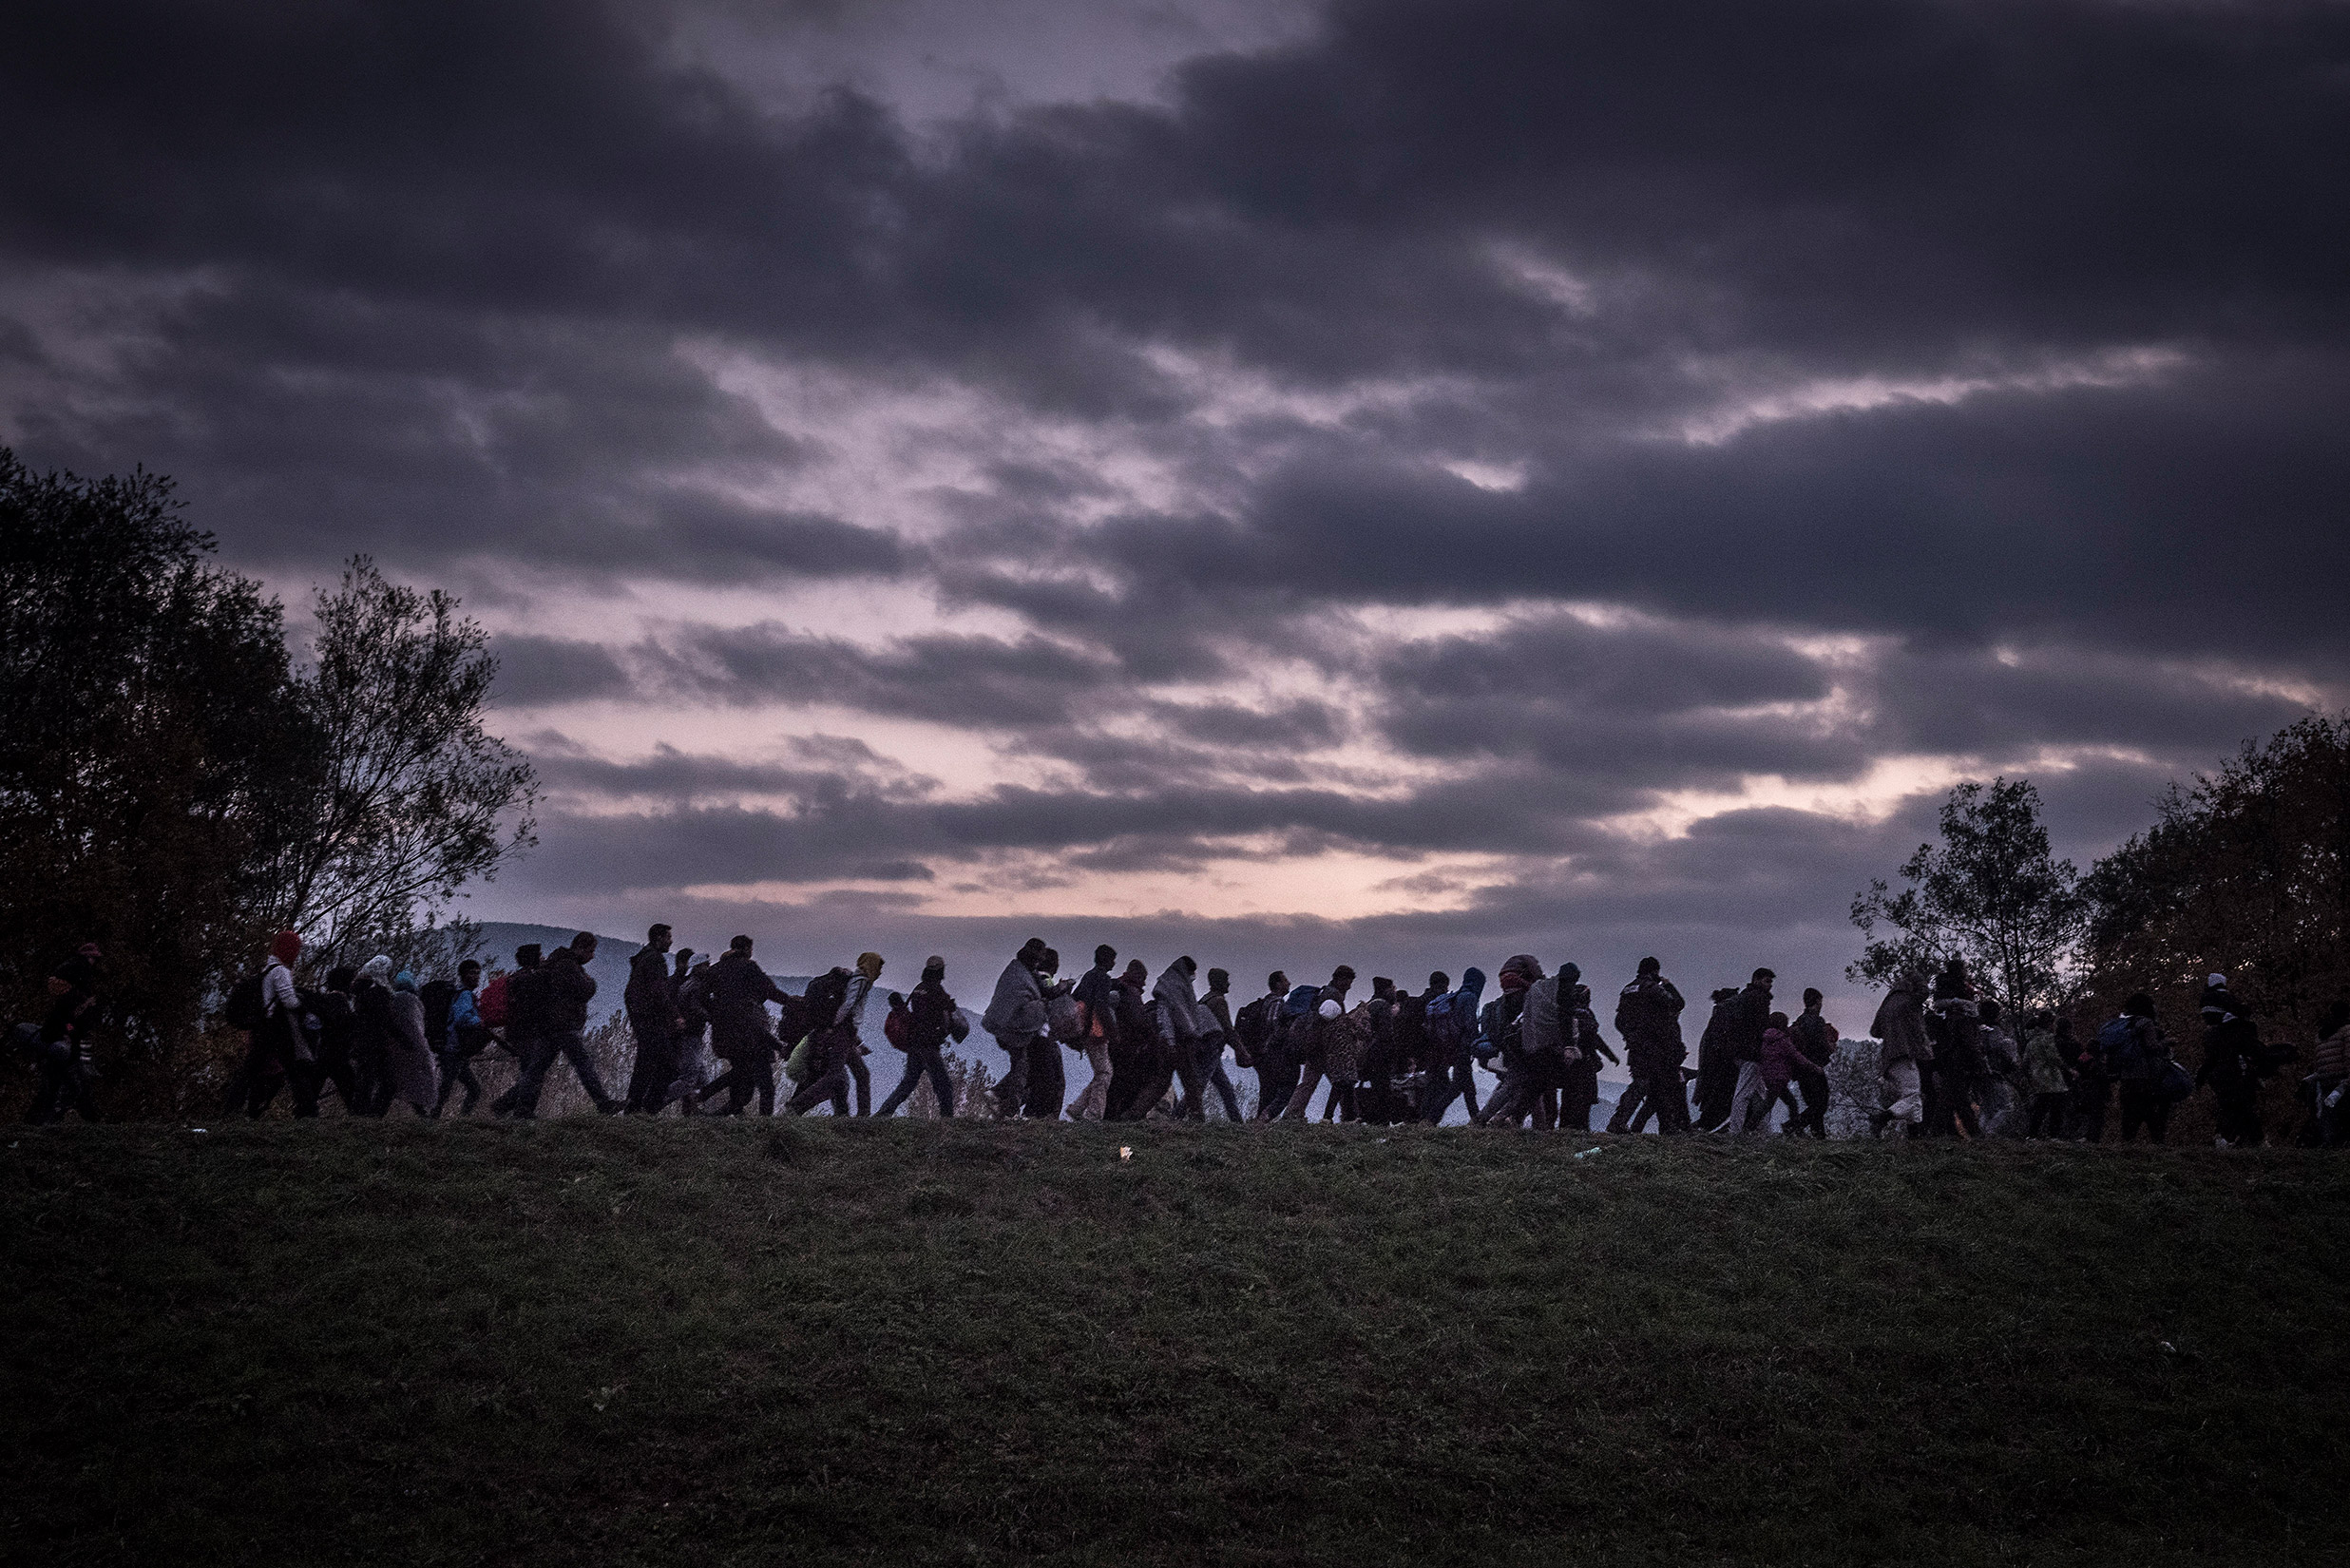 Migrants walking in line in the distance across a grassy field in the early morning or evening